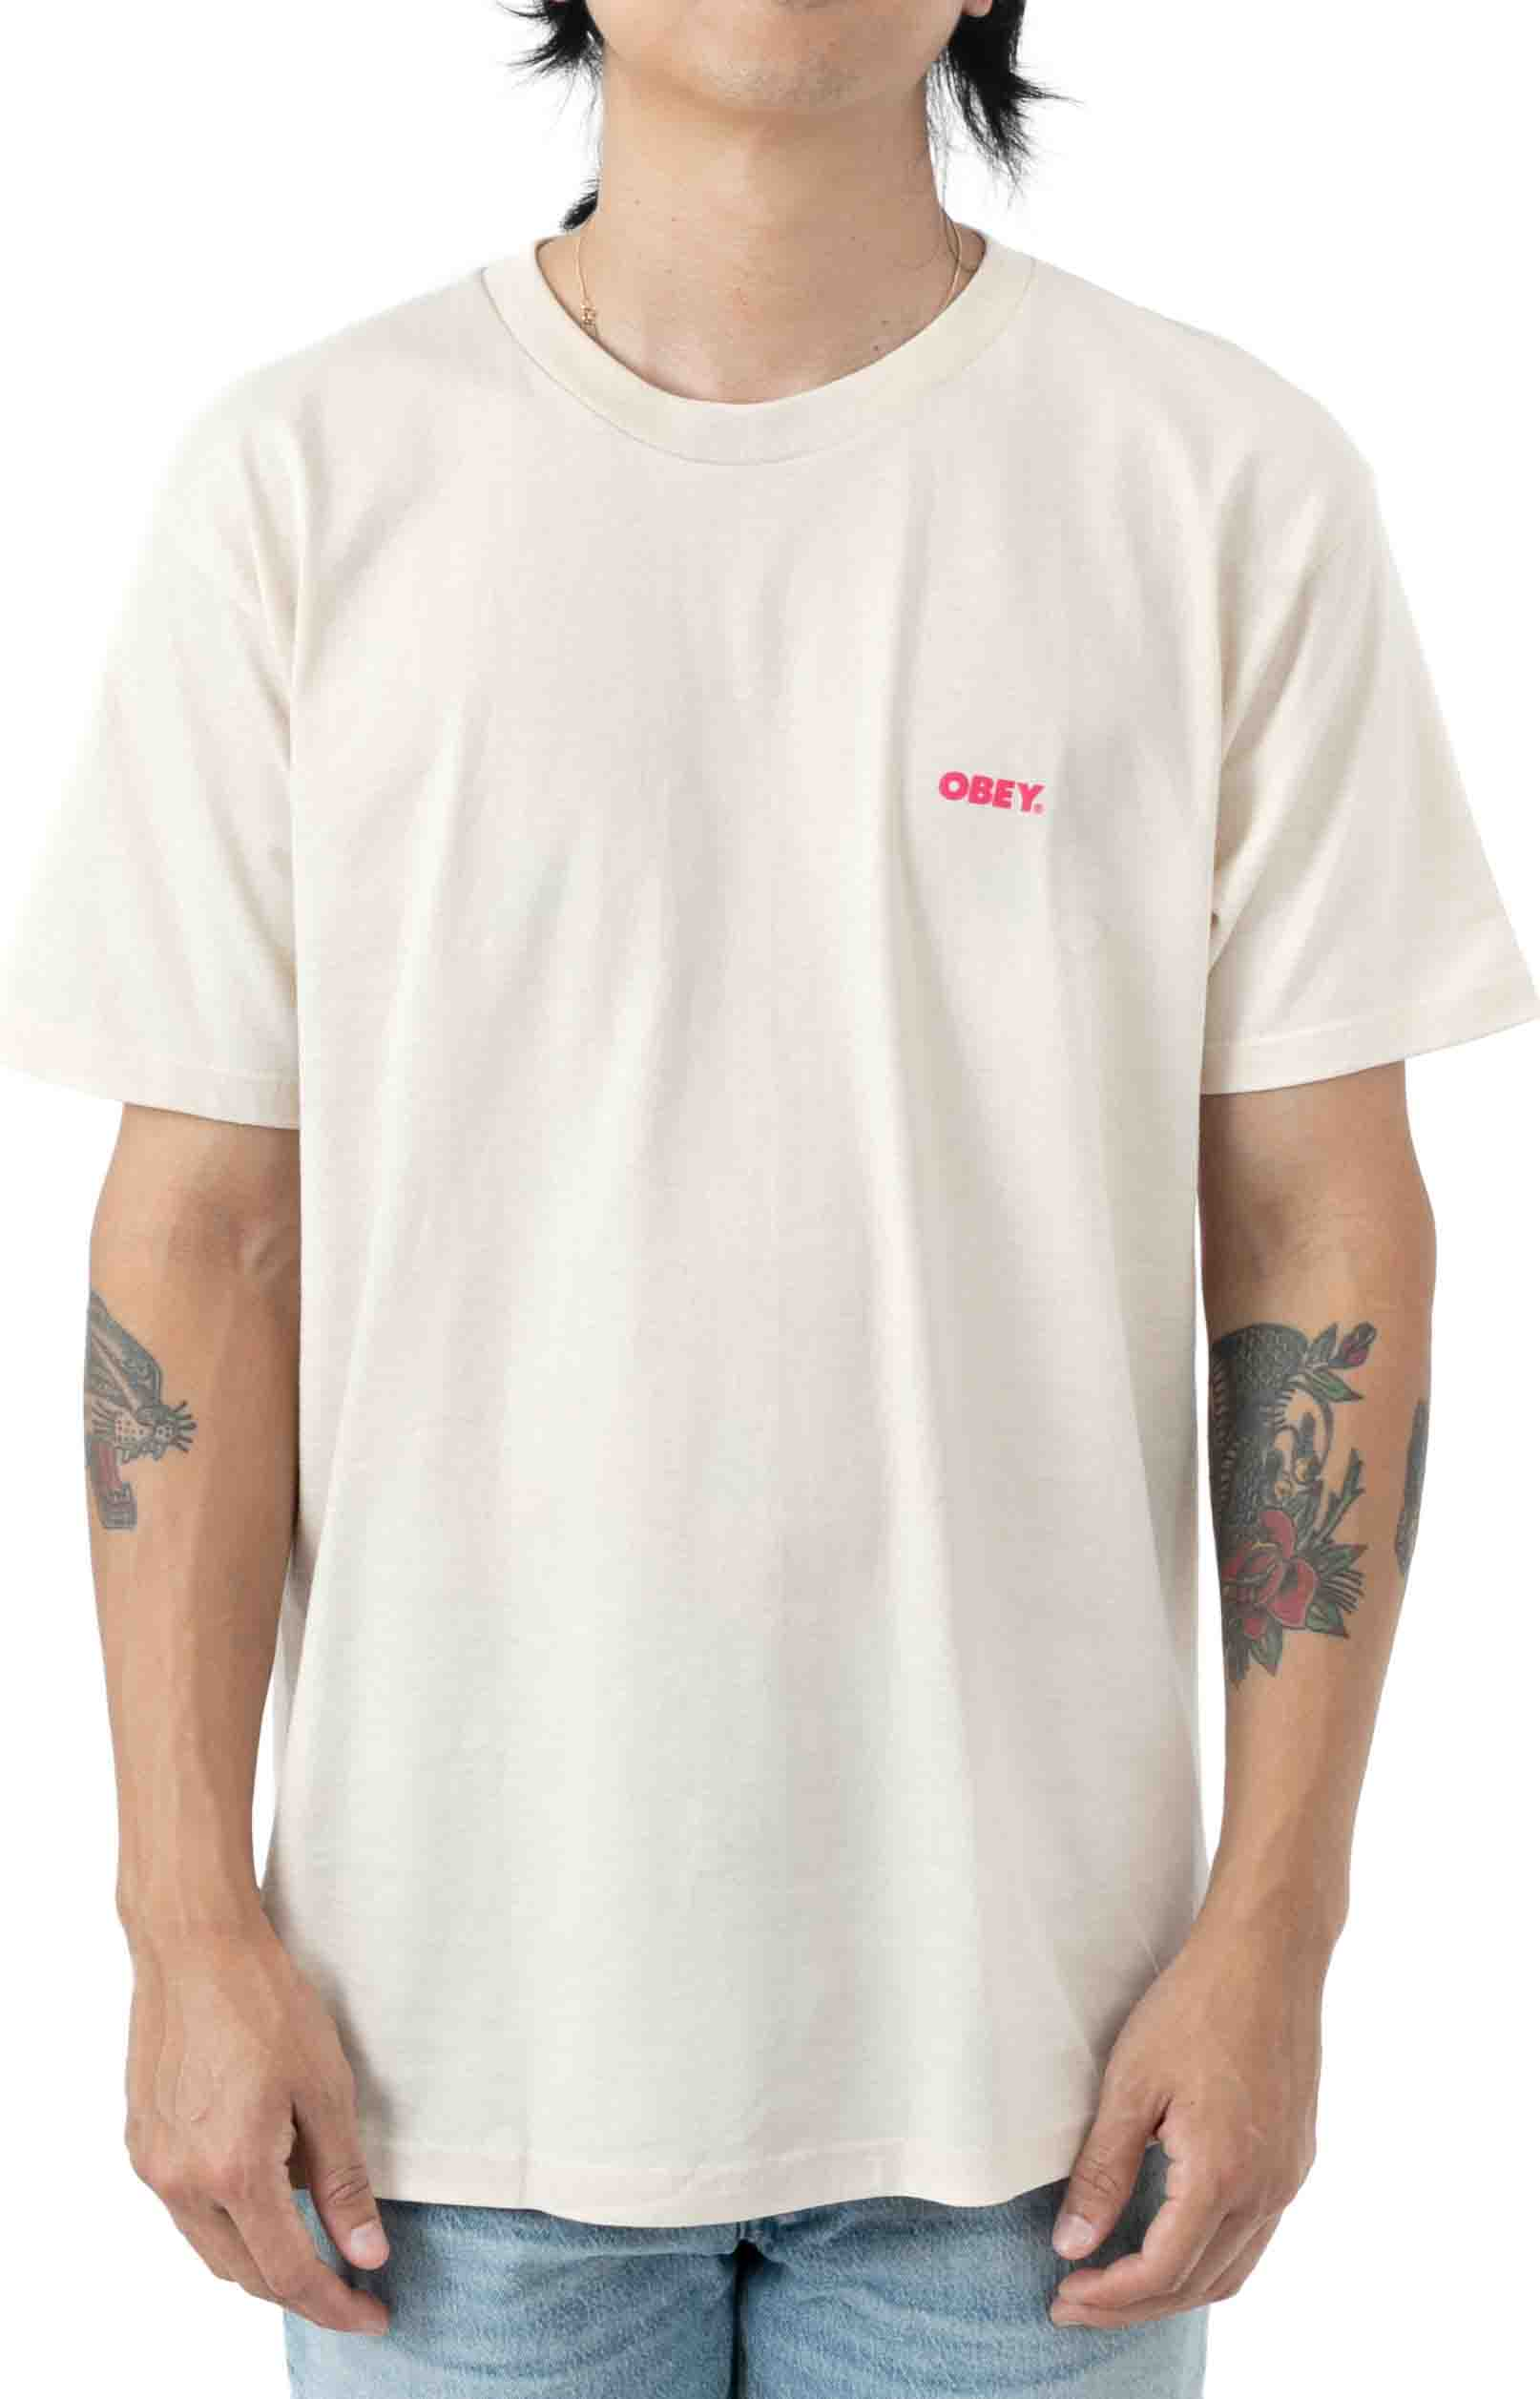 Blood and Roses T-Shirt - Cream  2